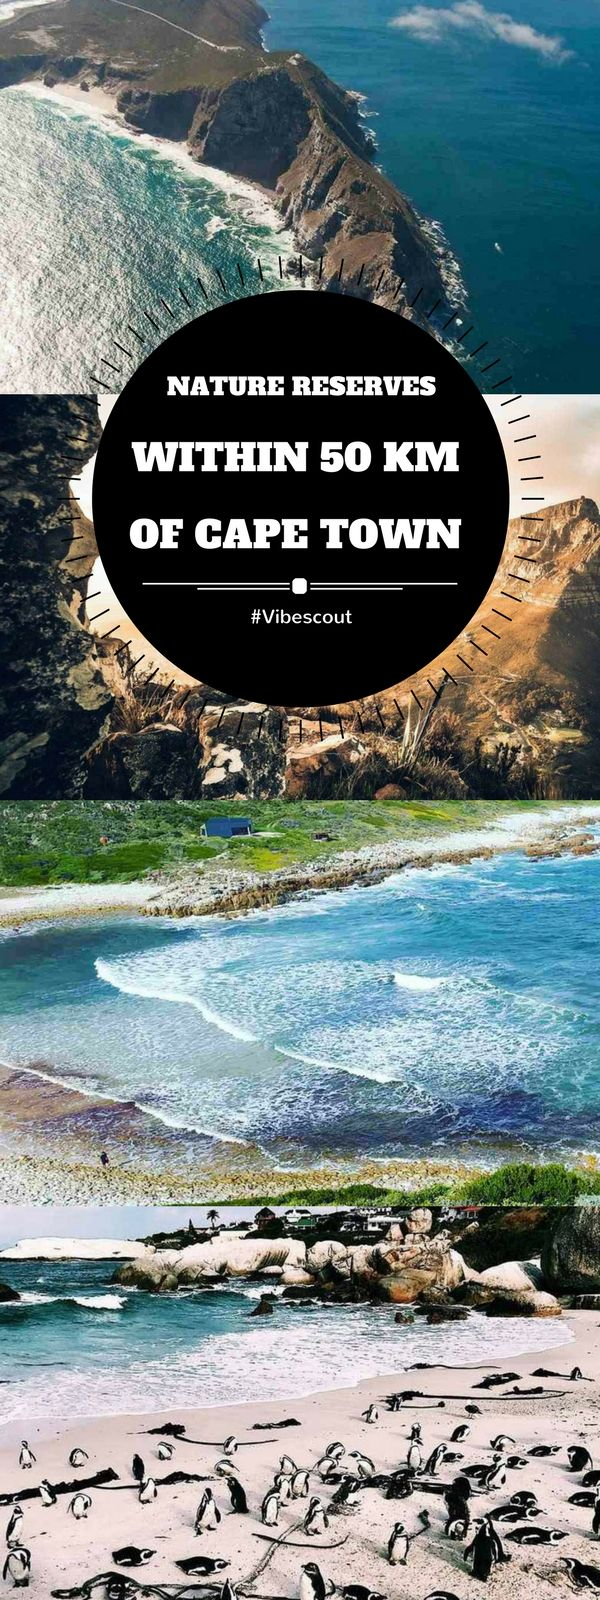 The best part about living or visiting nature reserves in or around Cape Town is how close the attractions are to the Mother City.